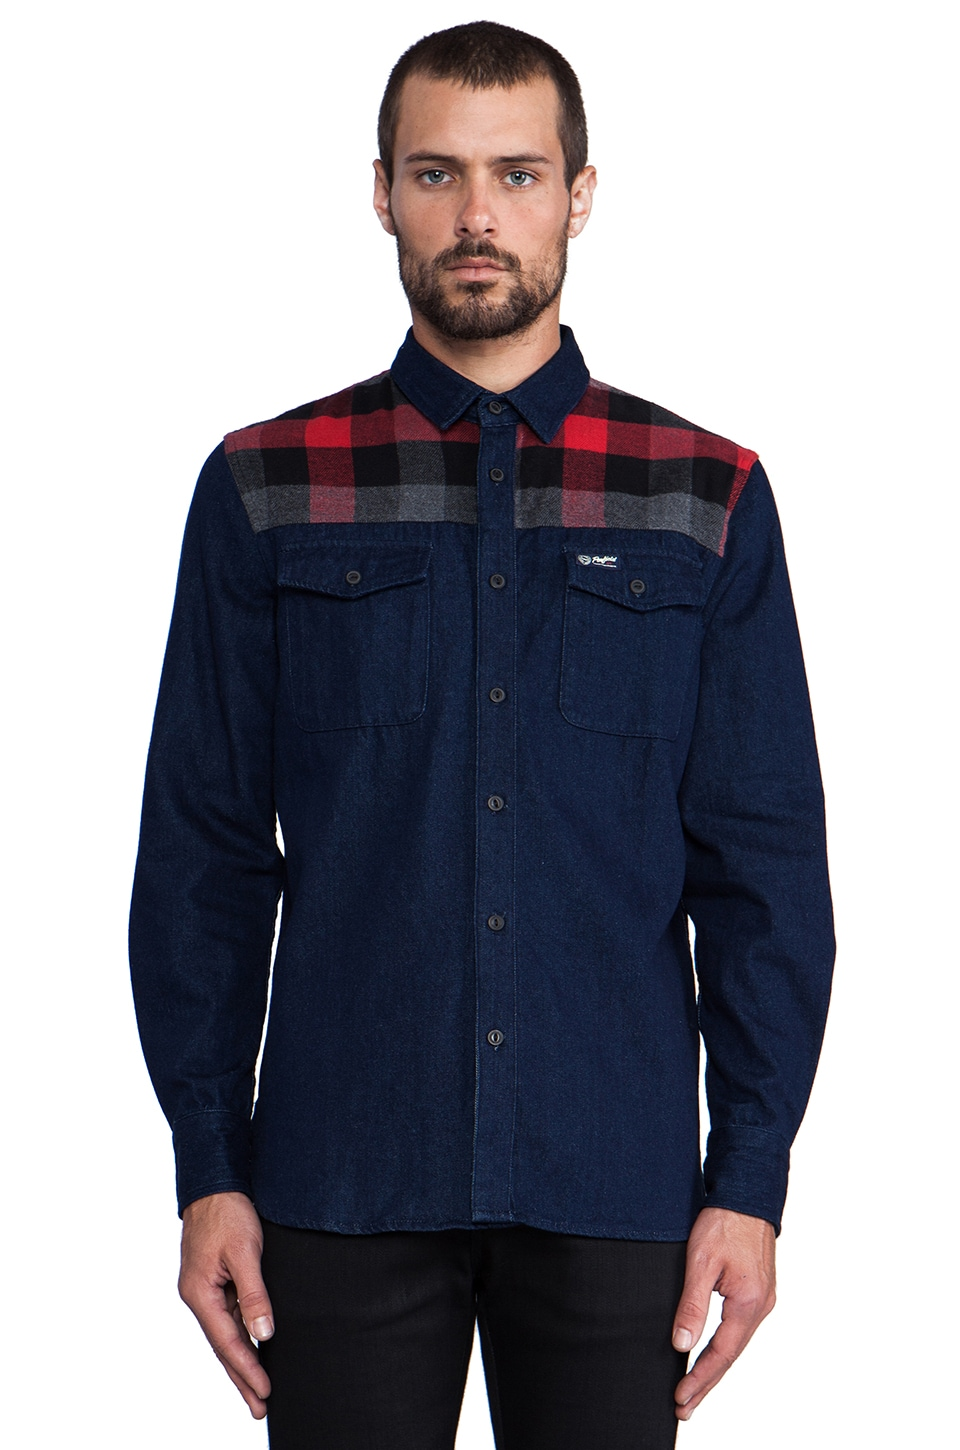 Penfield Wayland Denim Trail Shirt in Navy